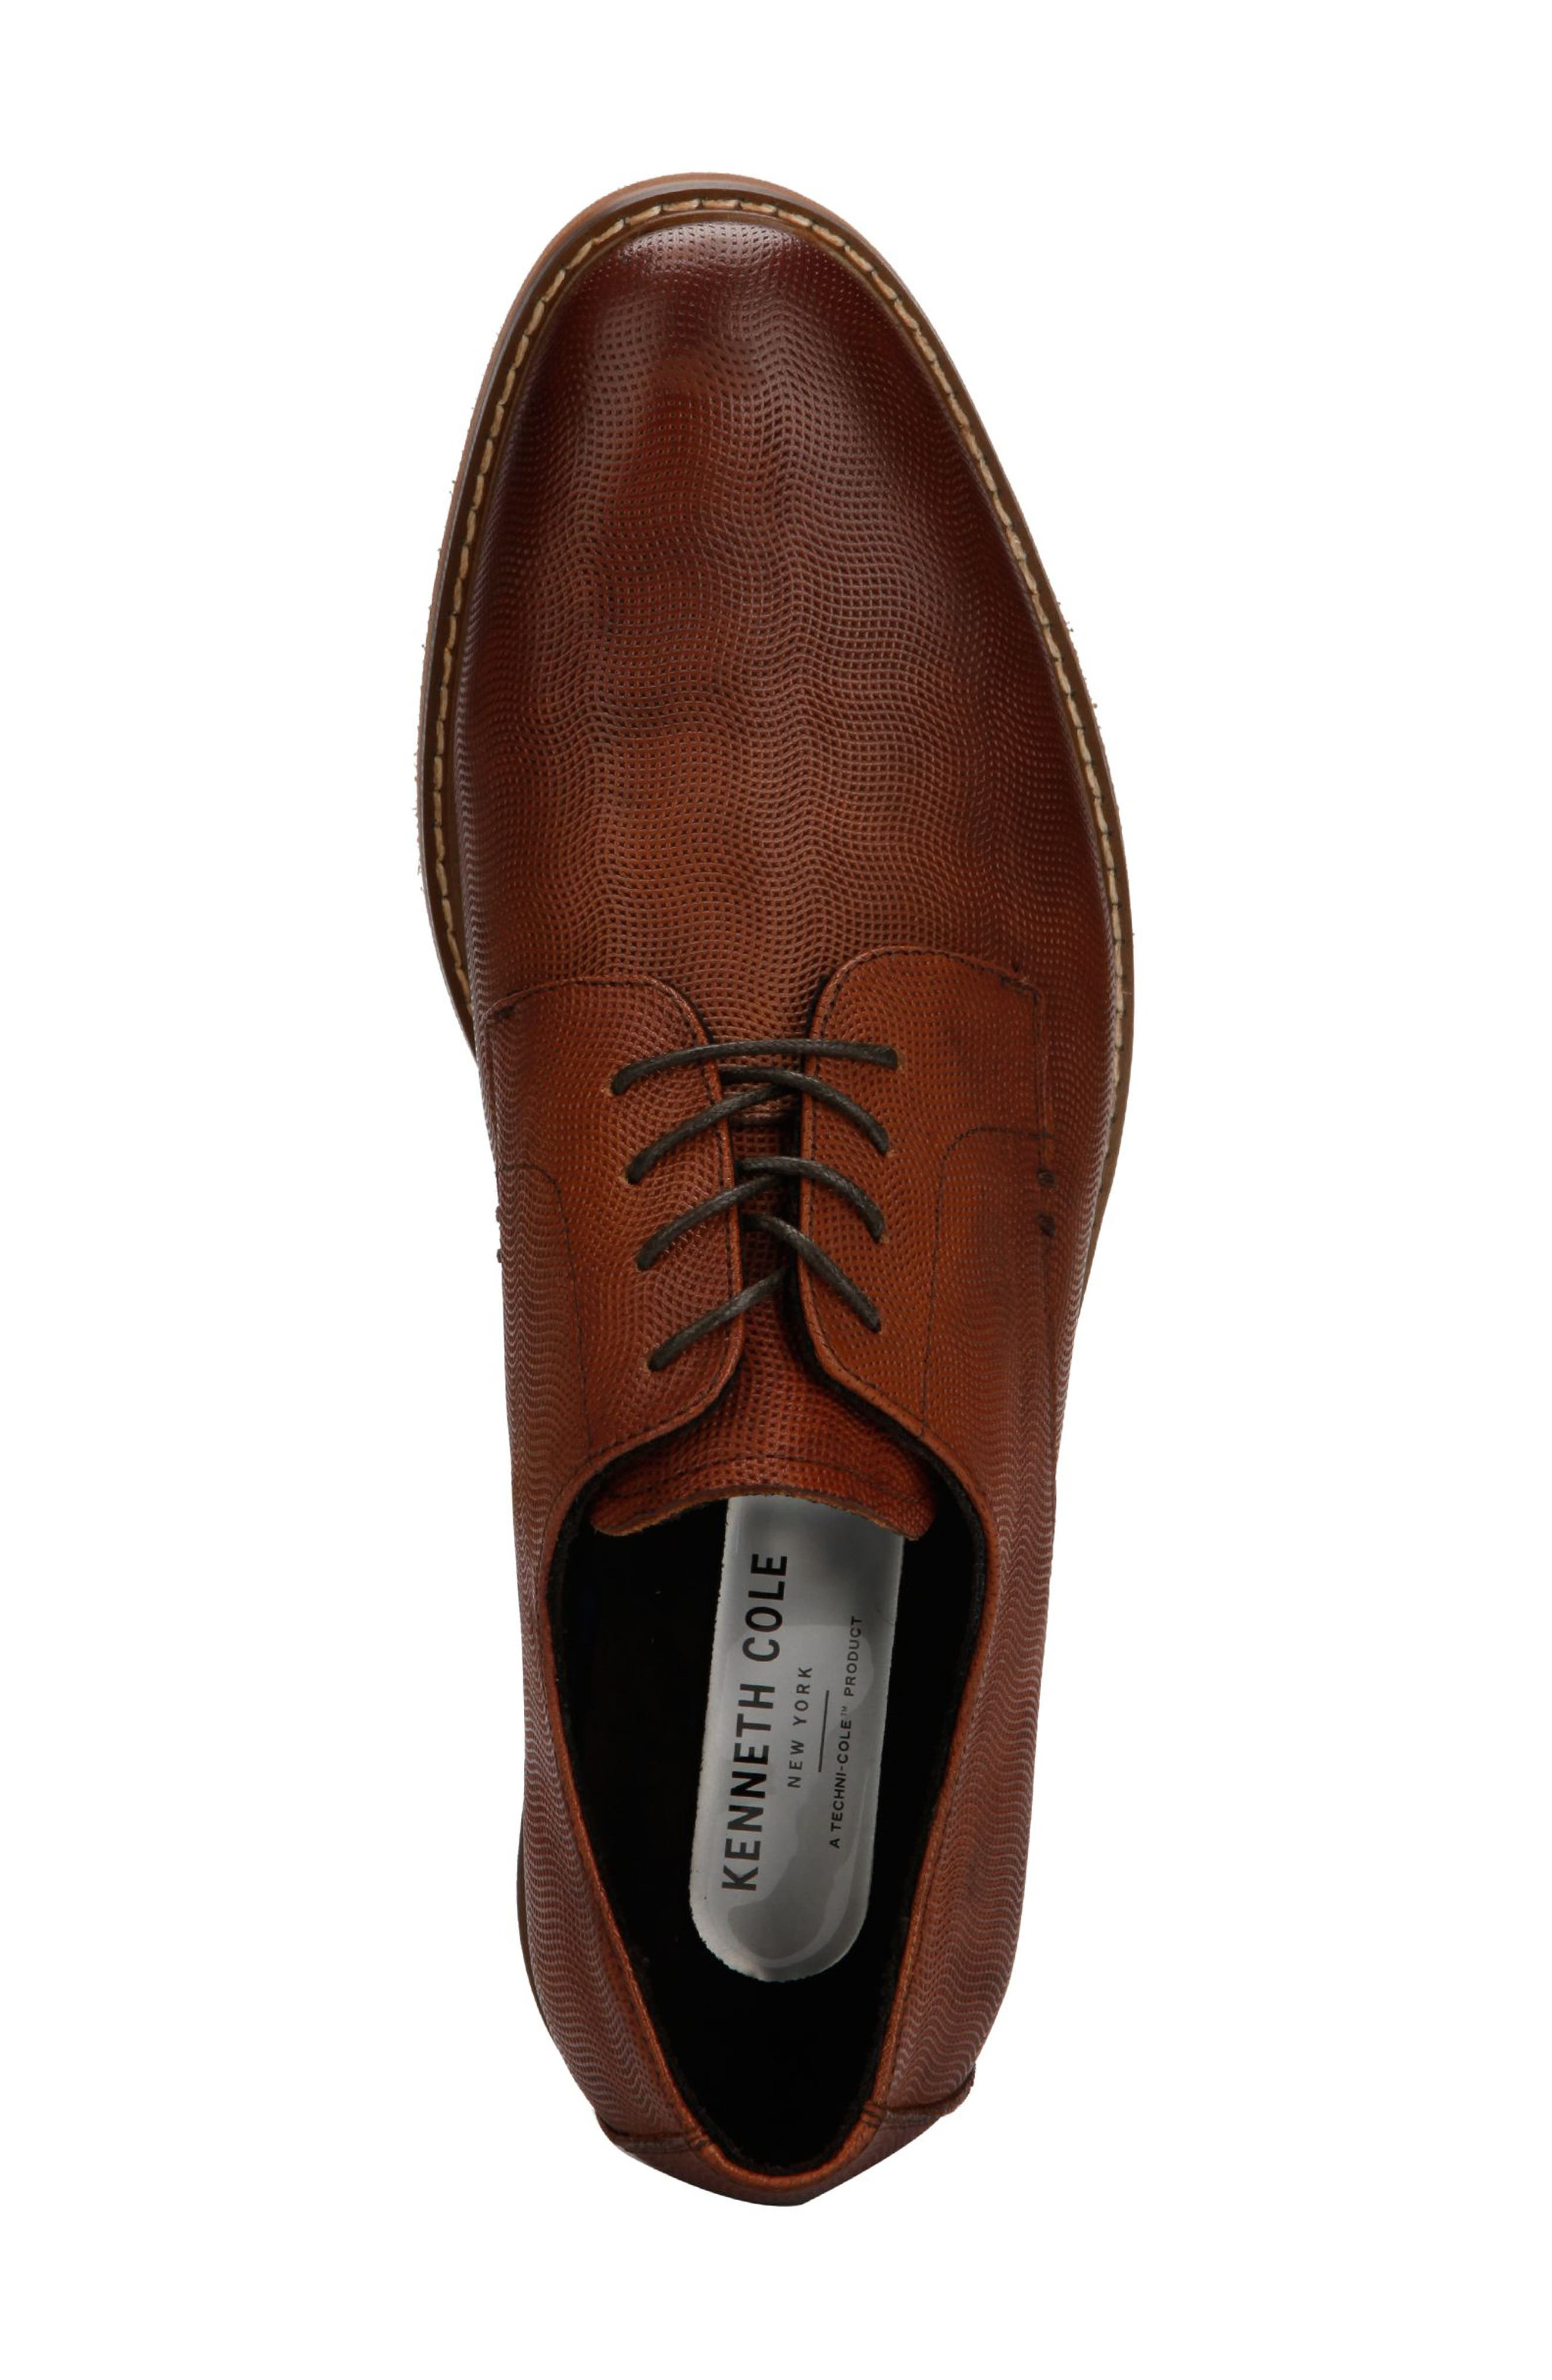 KENNETH COLE NEW YORK, Dance Textured Plain Toe Derby, Alternate thumbnail 3, color, COGNAC EMBOSSED LEATHER